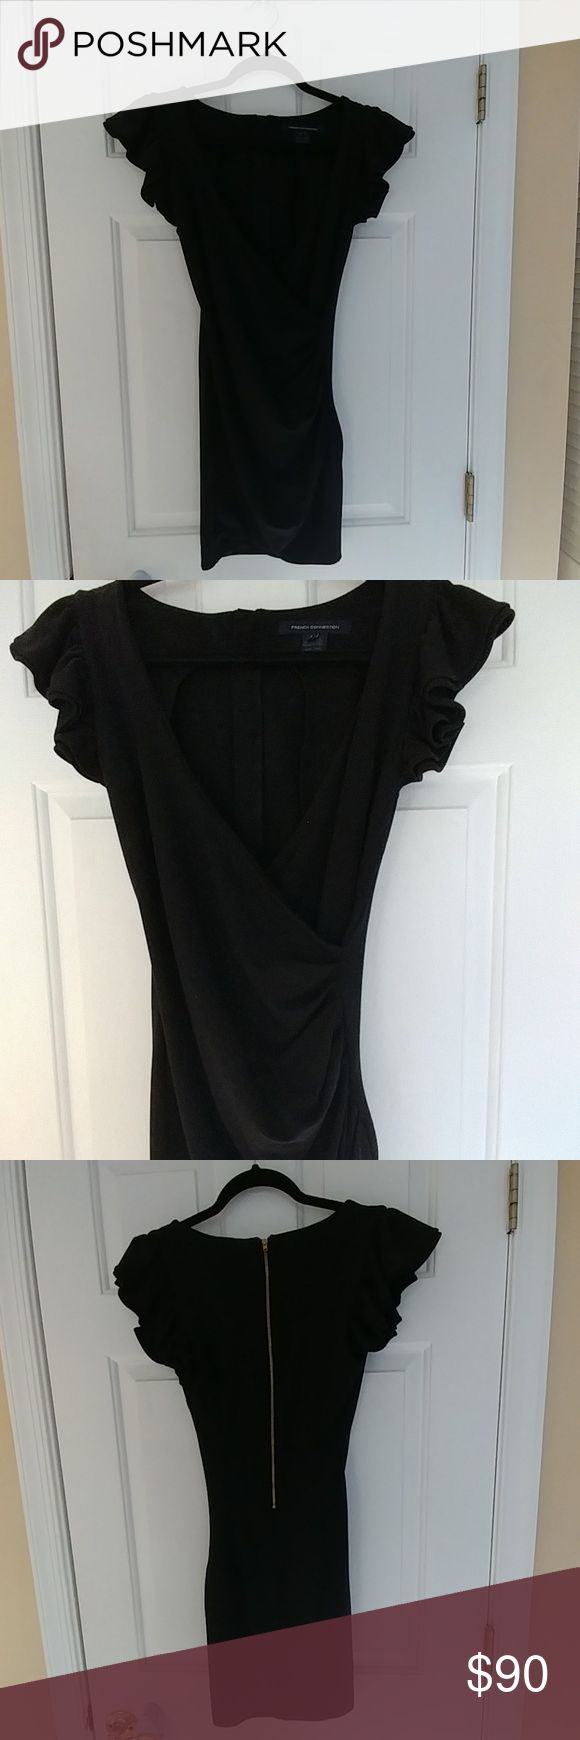 """French Connection Little Black Dress NWOT Never worn French Connection brand dress Size 4. Extremely well made, thicker stretchy material. wrap style with ruffled sleeves and plunging neckline with Zipper up the back. I'm 5""""3' and it hits me about mid though French Connection Dresses"""